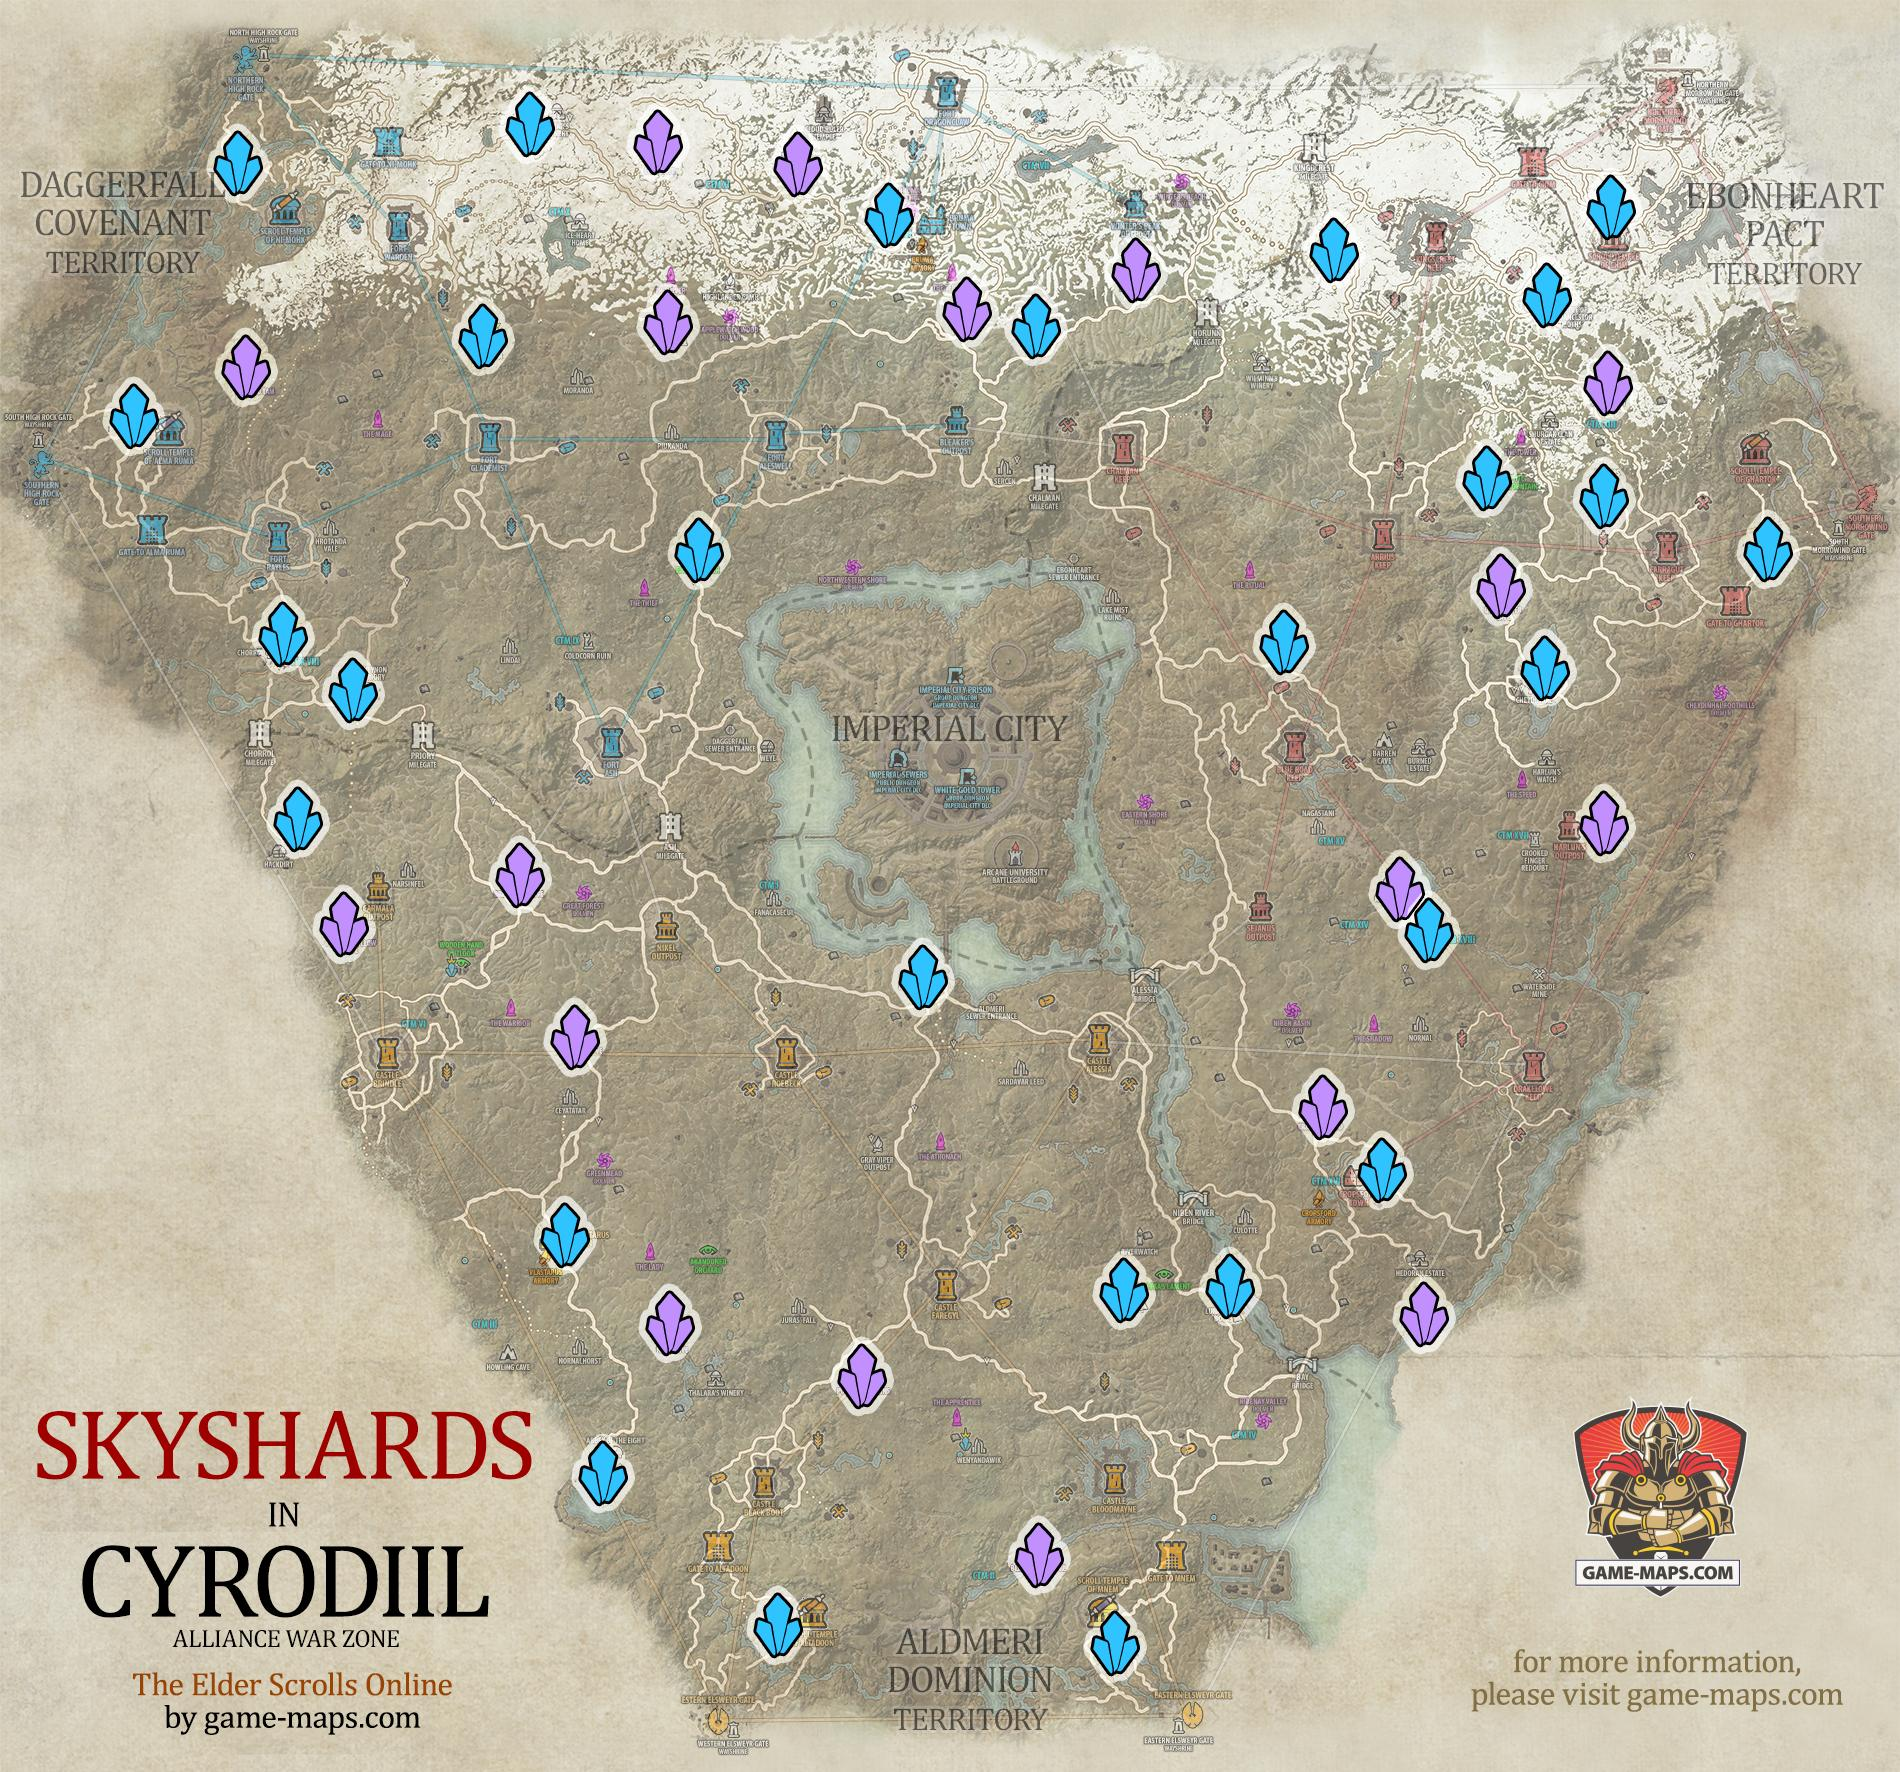 Cyrodiil Skyshards Location Map - ESO